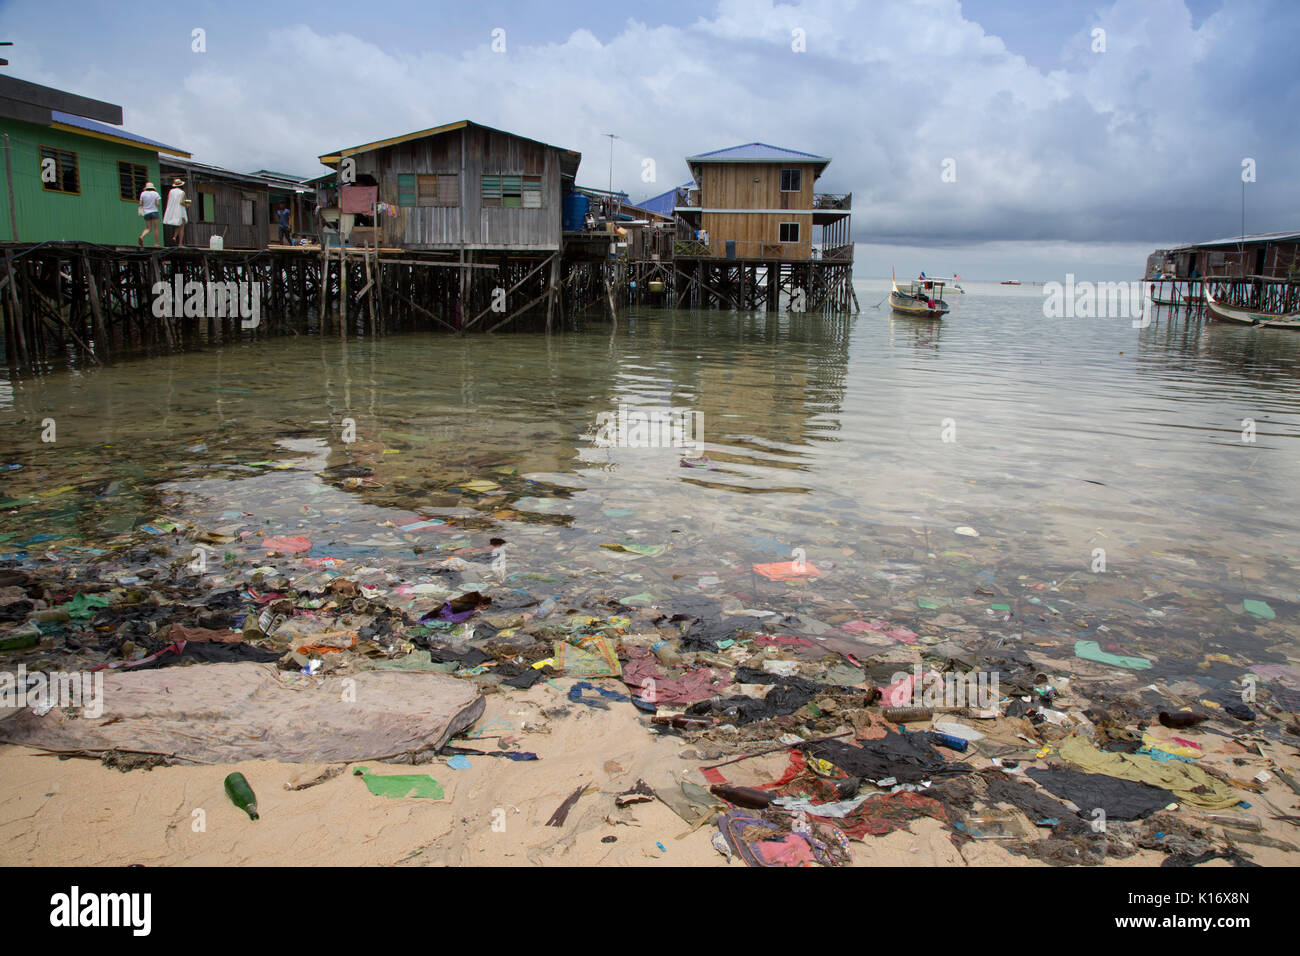 Plastic trash and other garbage make for an ugly beach scene on Mabul Island, Borneo. The wooden buildings on stilts are budget dive resorts - Stock Image